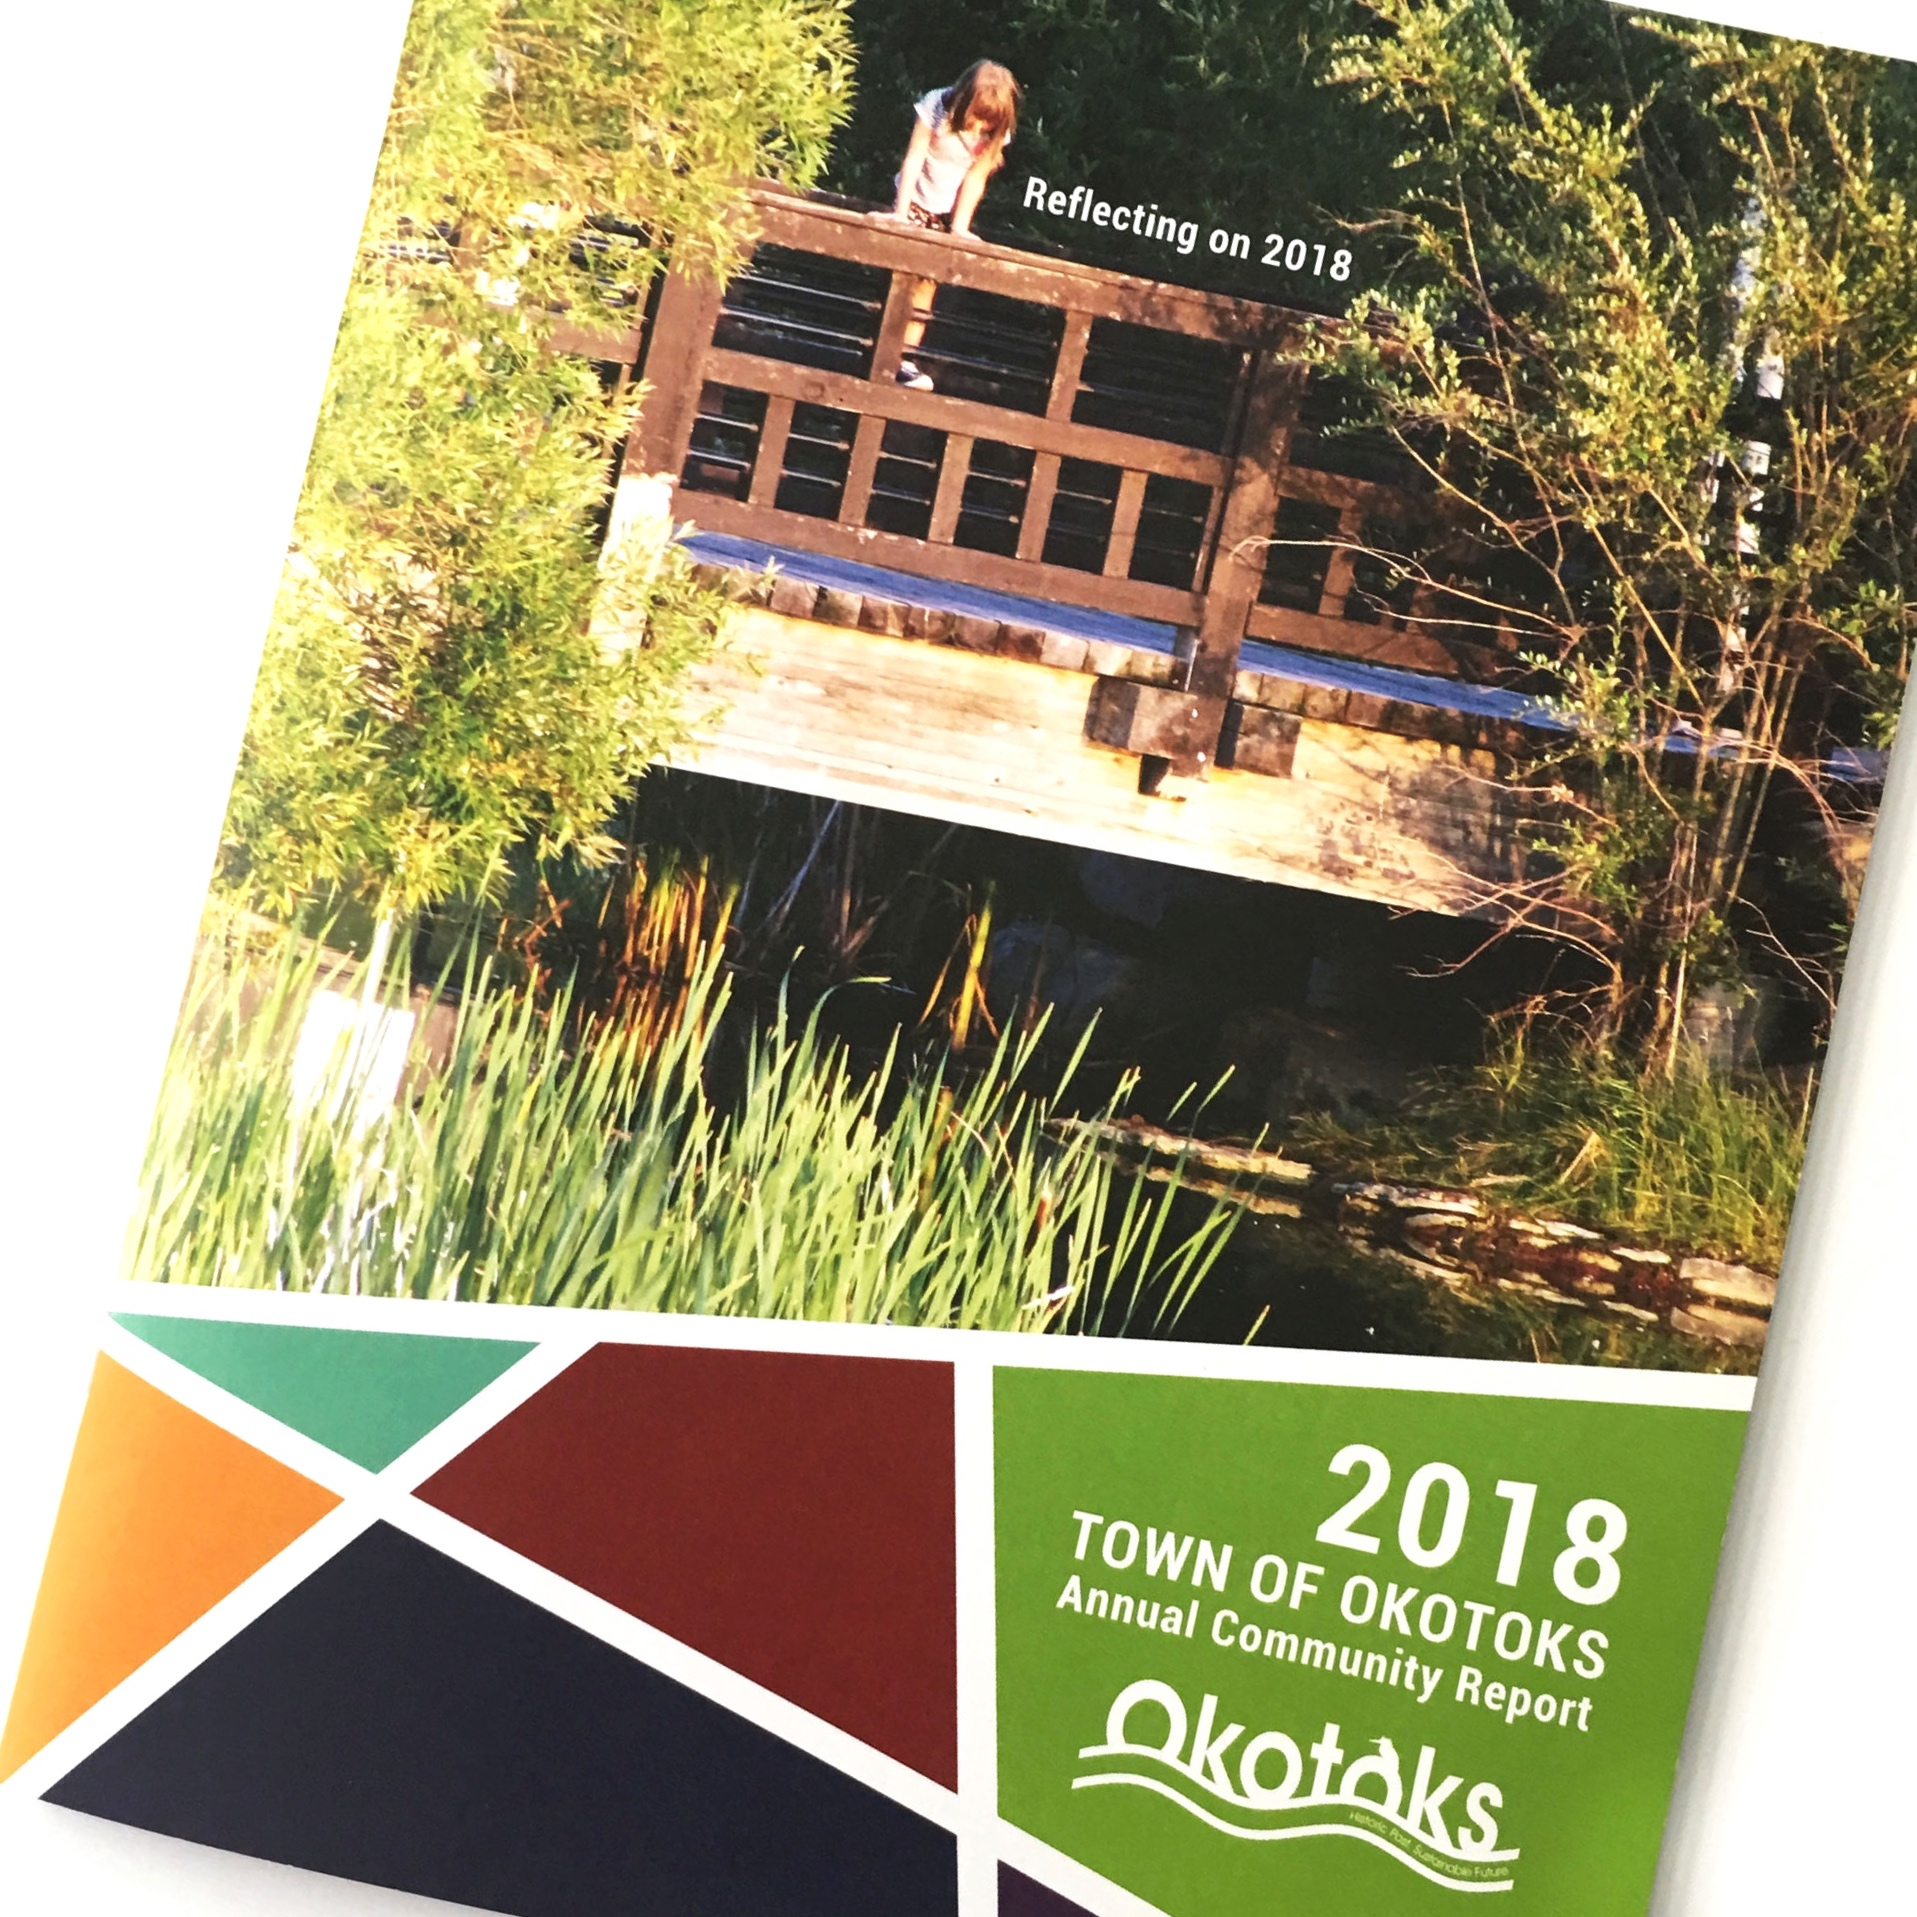 Town of Okotoks - 2018 Annual Community Report